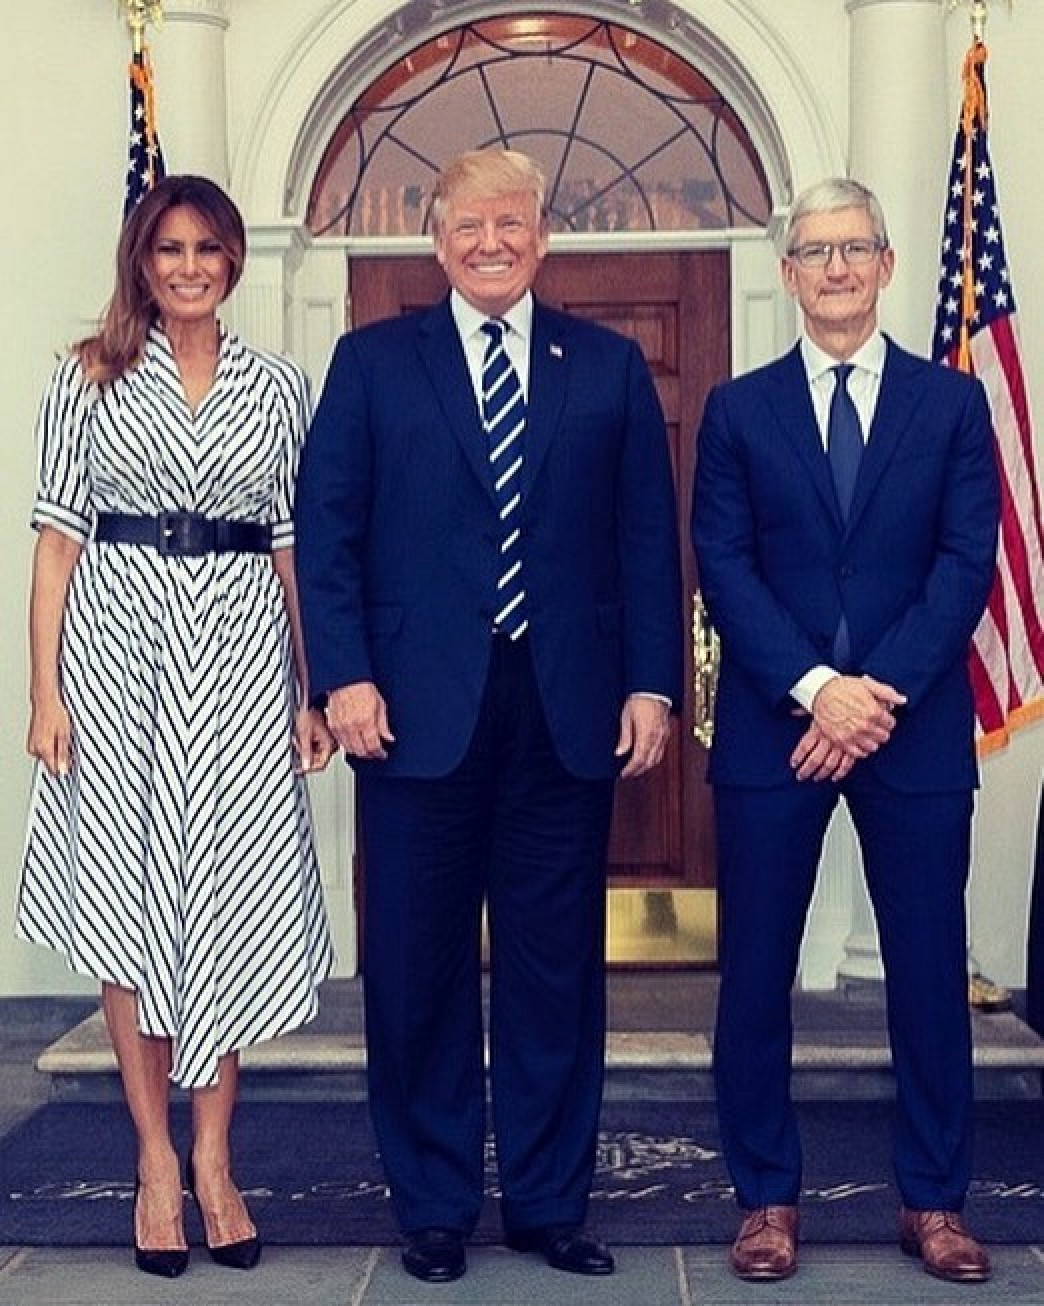 Trump Says Tim Cook Made 'Good Case' That Tariffs Would Put Apple at Disadvantage With Rivals Like Samsung